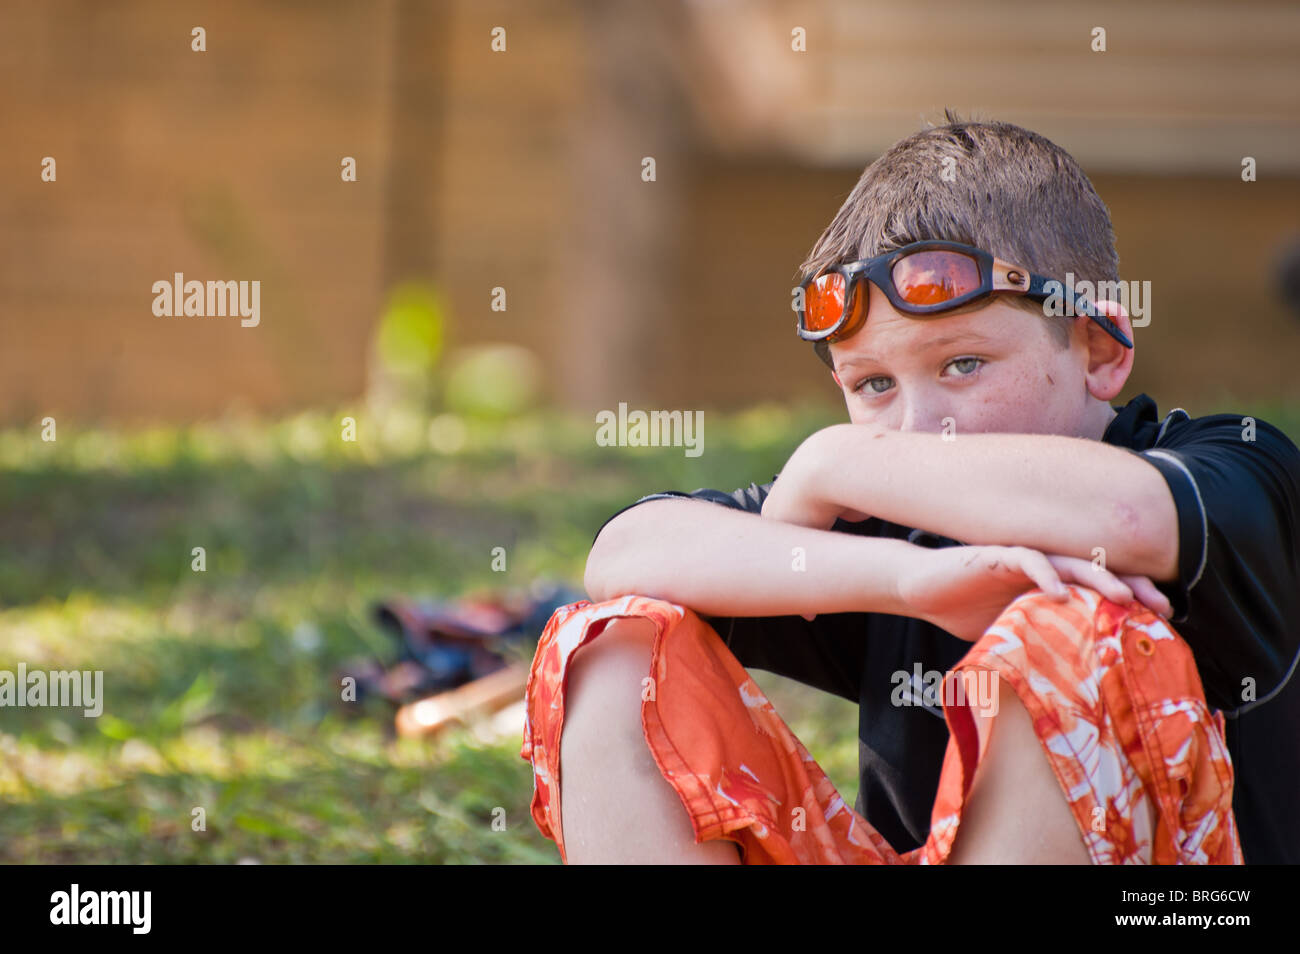 10-yr-old boy wet from swimming watches other swimmers at spring-fed pool. - Stock Image